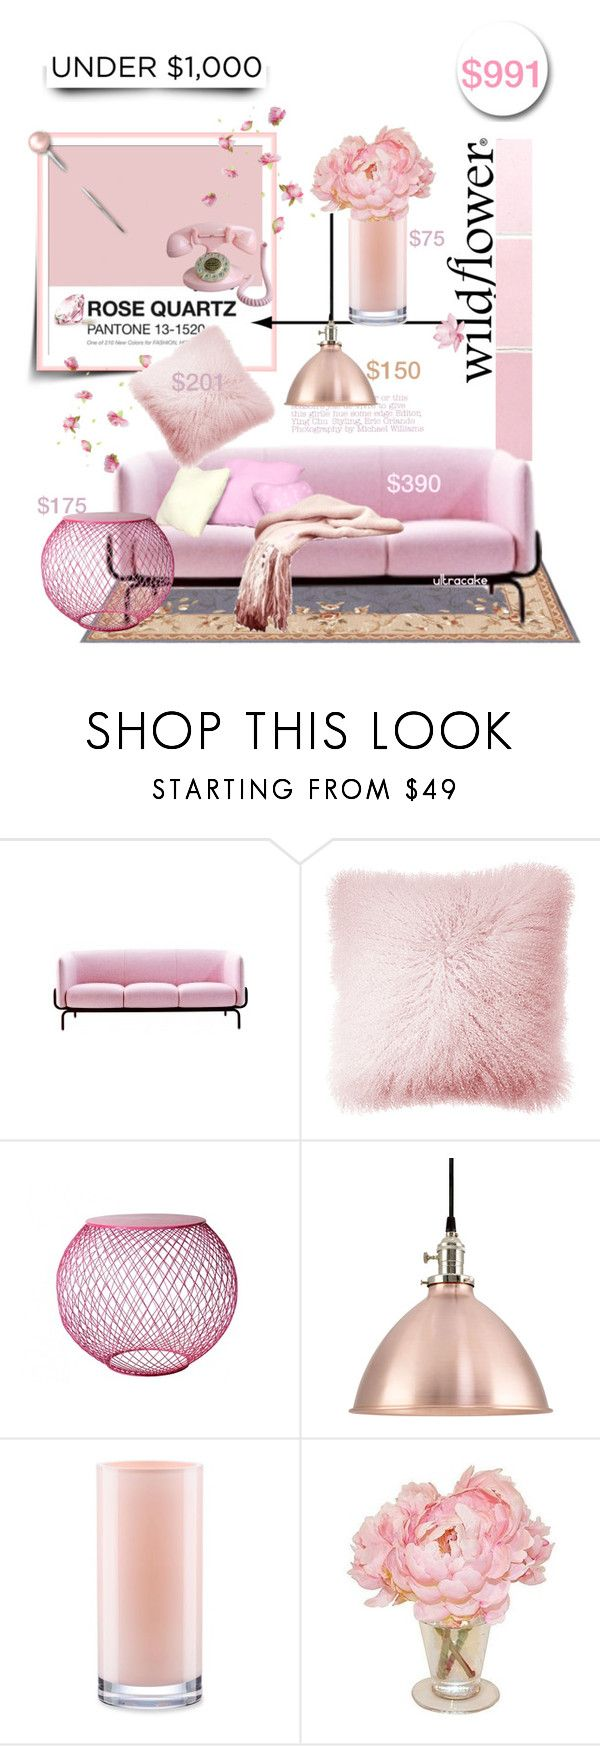 """""""Rose Quartz Living Room"""" by ultracake ❤ liked on Polyvore featuring interior, interiors, interior design, дом, home decor, interior decorating, JAG Zoeppritz, Sounds Like Home, Kate Spade и living room"""